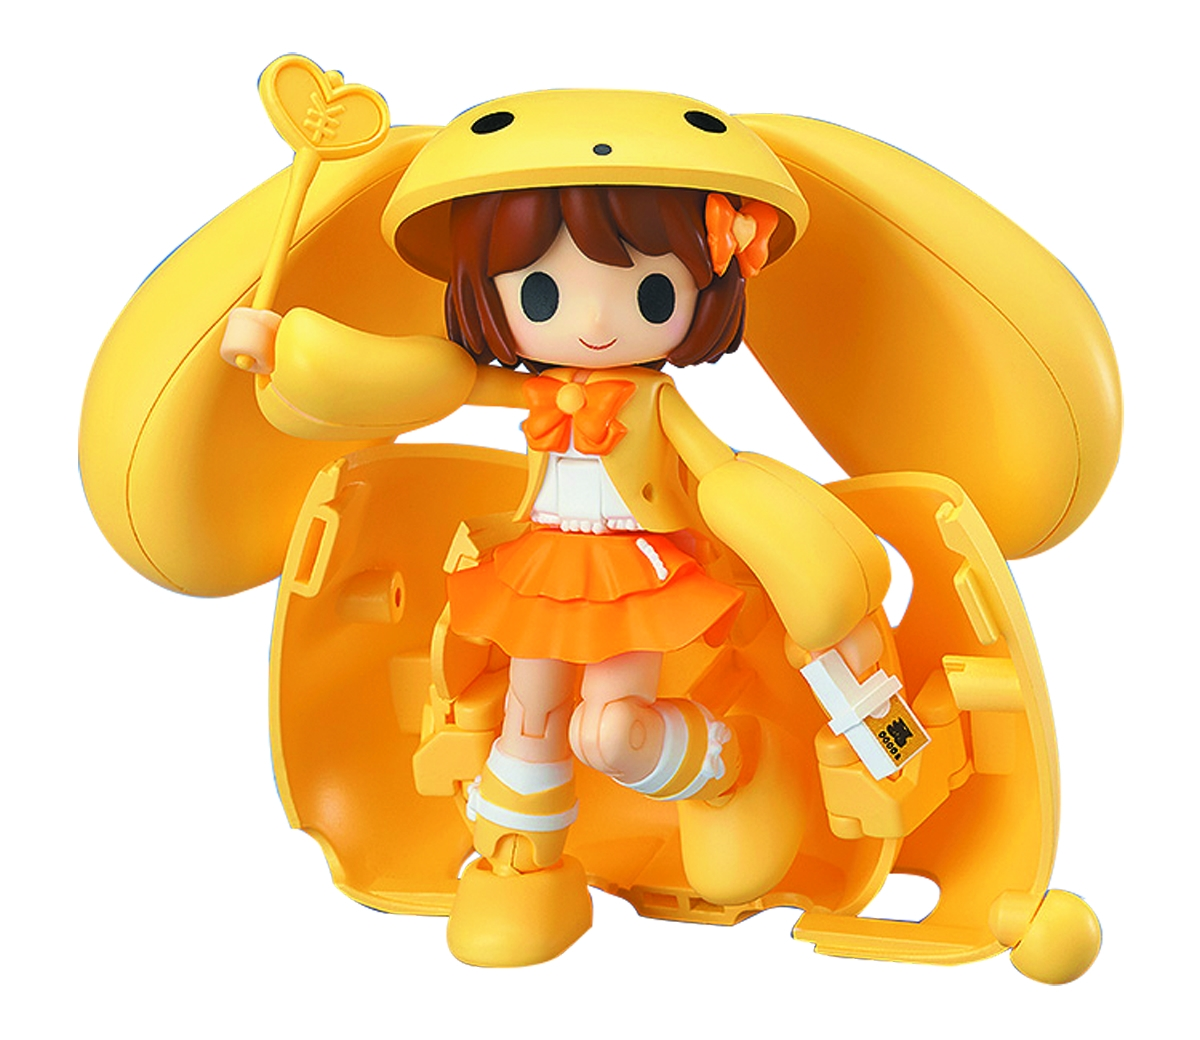 Woosers Hand-To-Mouth Life Phantasmagoric Arc: Wooser Metamoroid (PFV Figure)